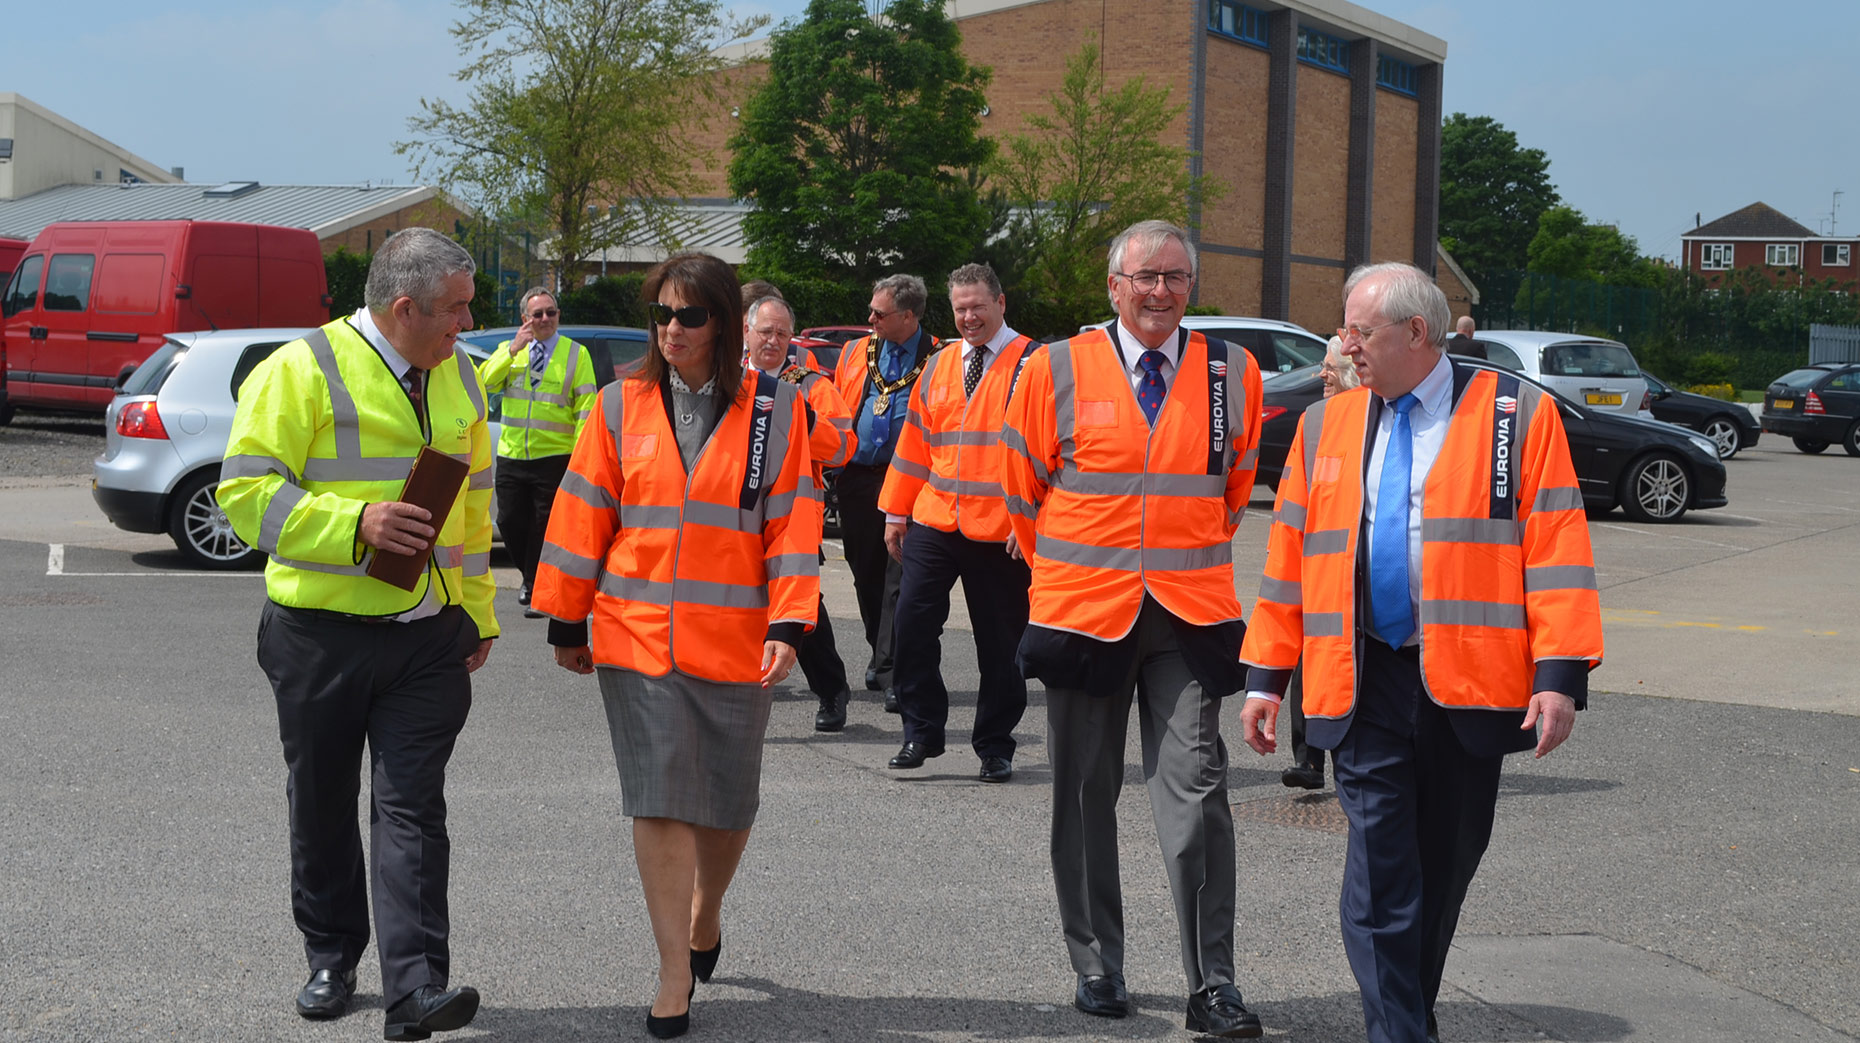 Council representatives and guests marked the completion of the project.